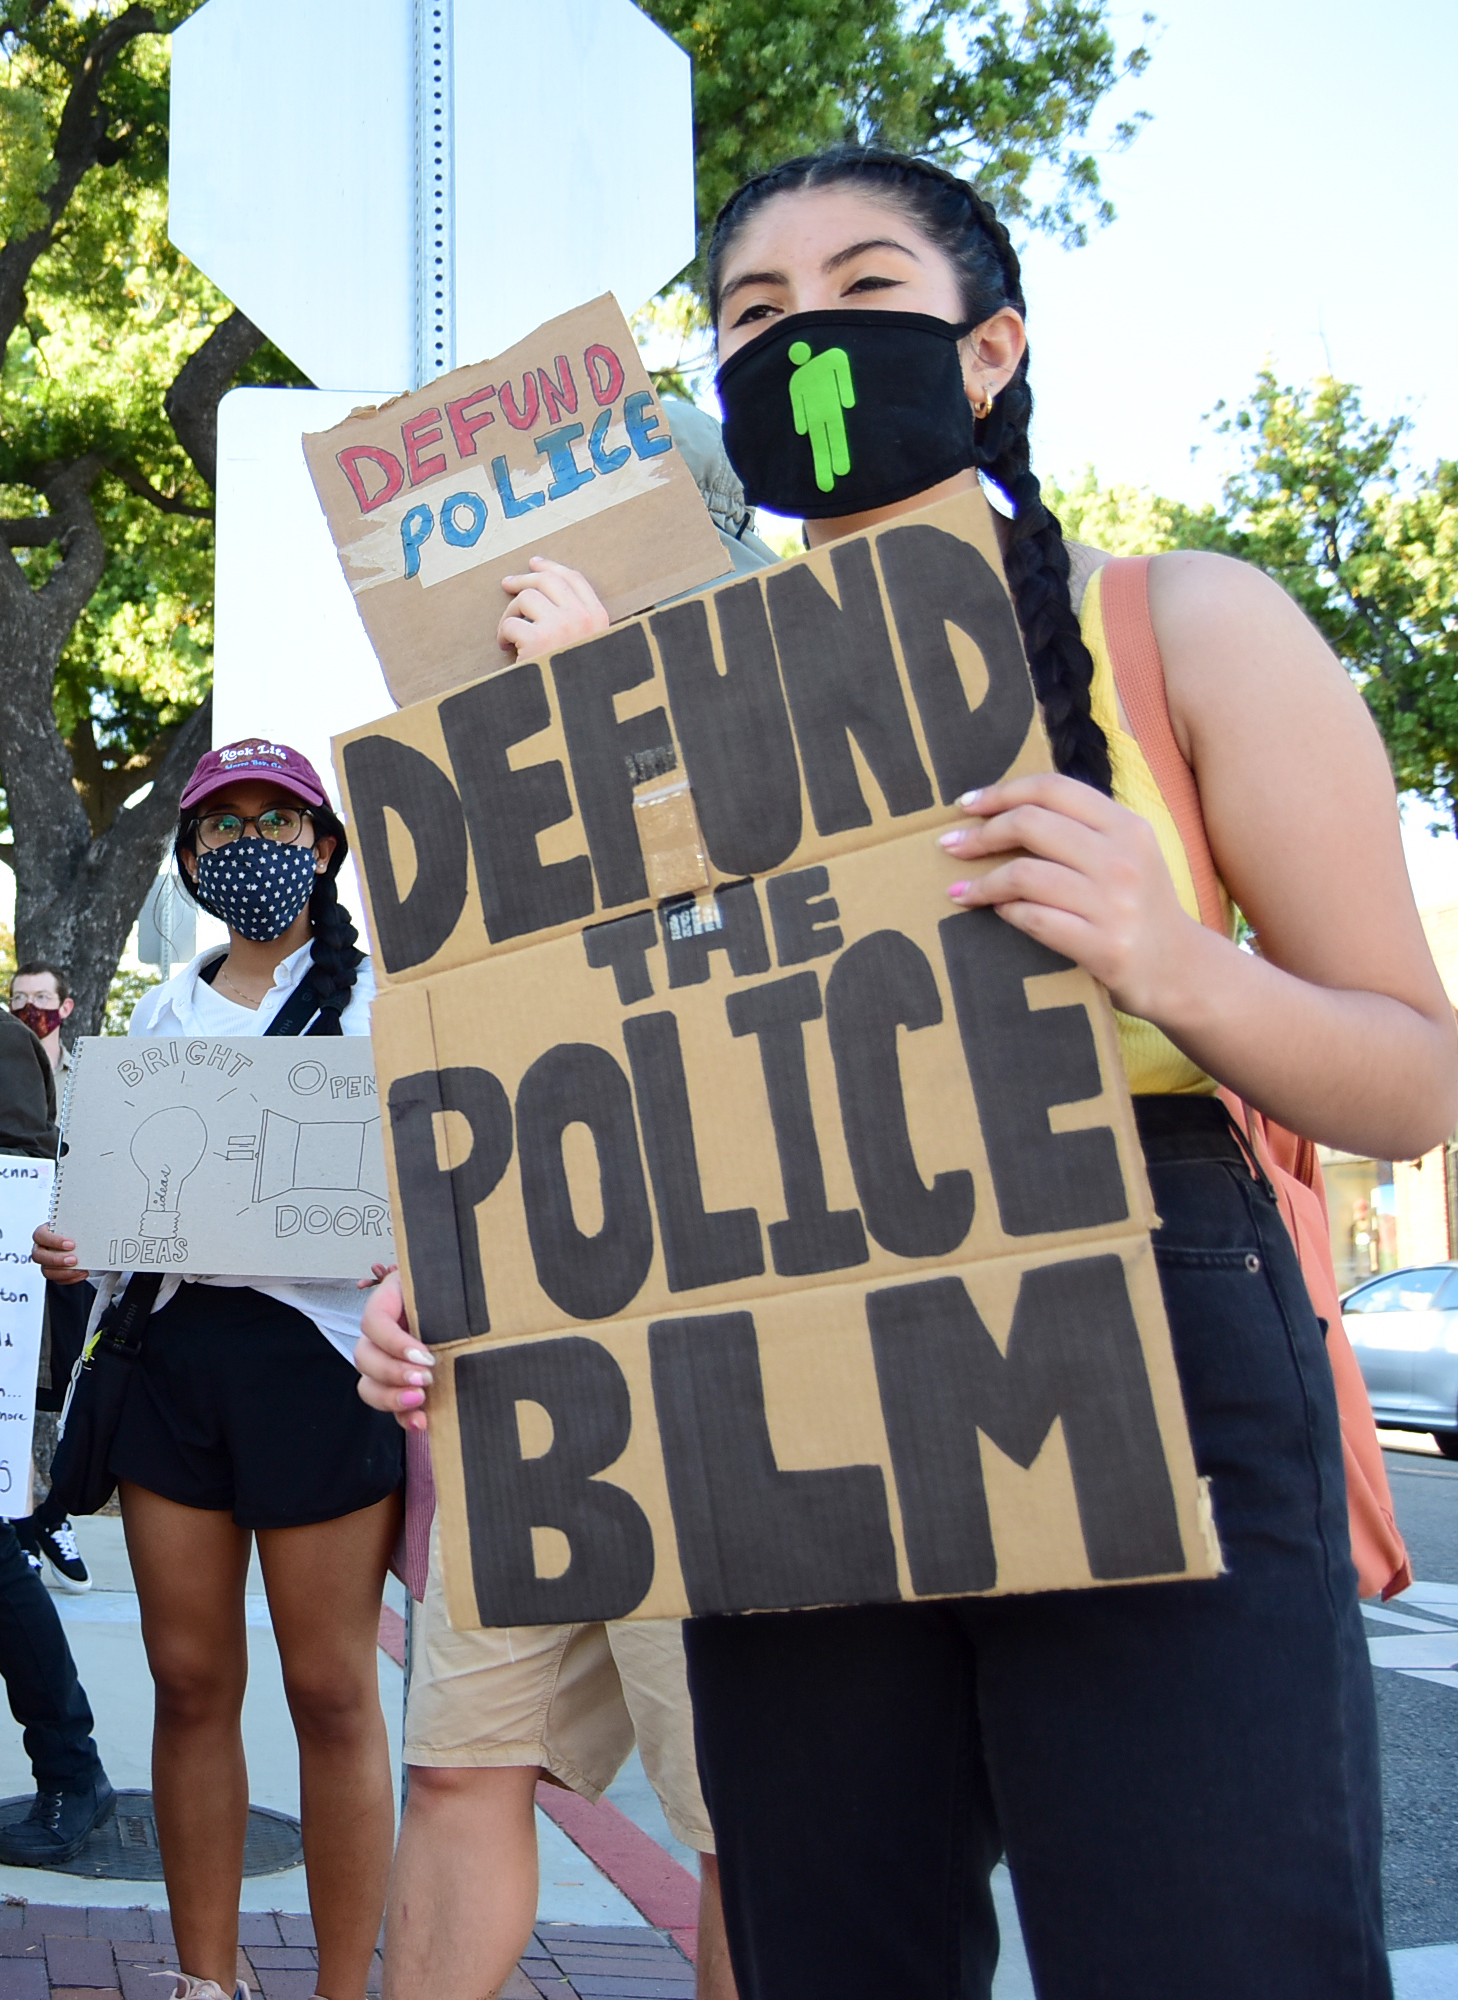 south-pasadena-news-06-12-2020-blm-black-lives-matter-sp-youth-for-police-reform-protest-city-hall-mission-st-28